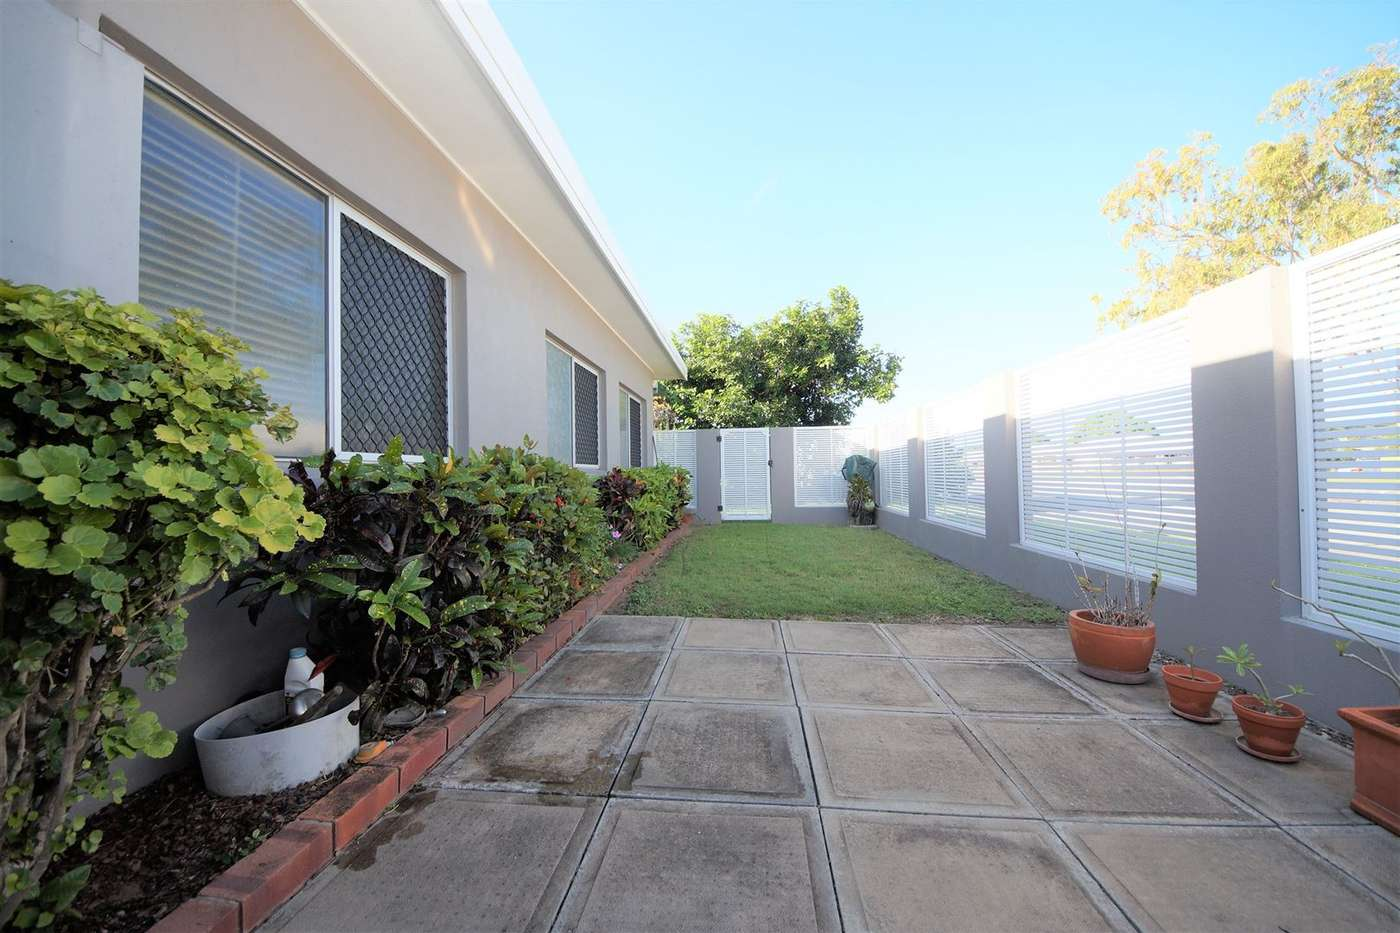 Main view of Homely unit listing, 3/63 Graham Street, Ayr, QLD 4807